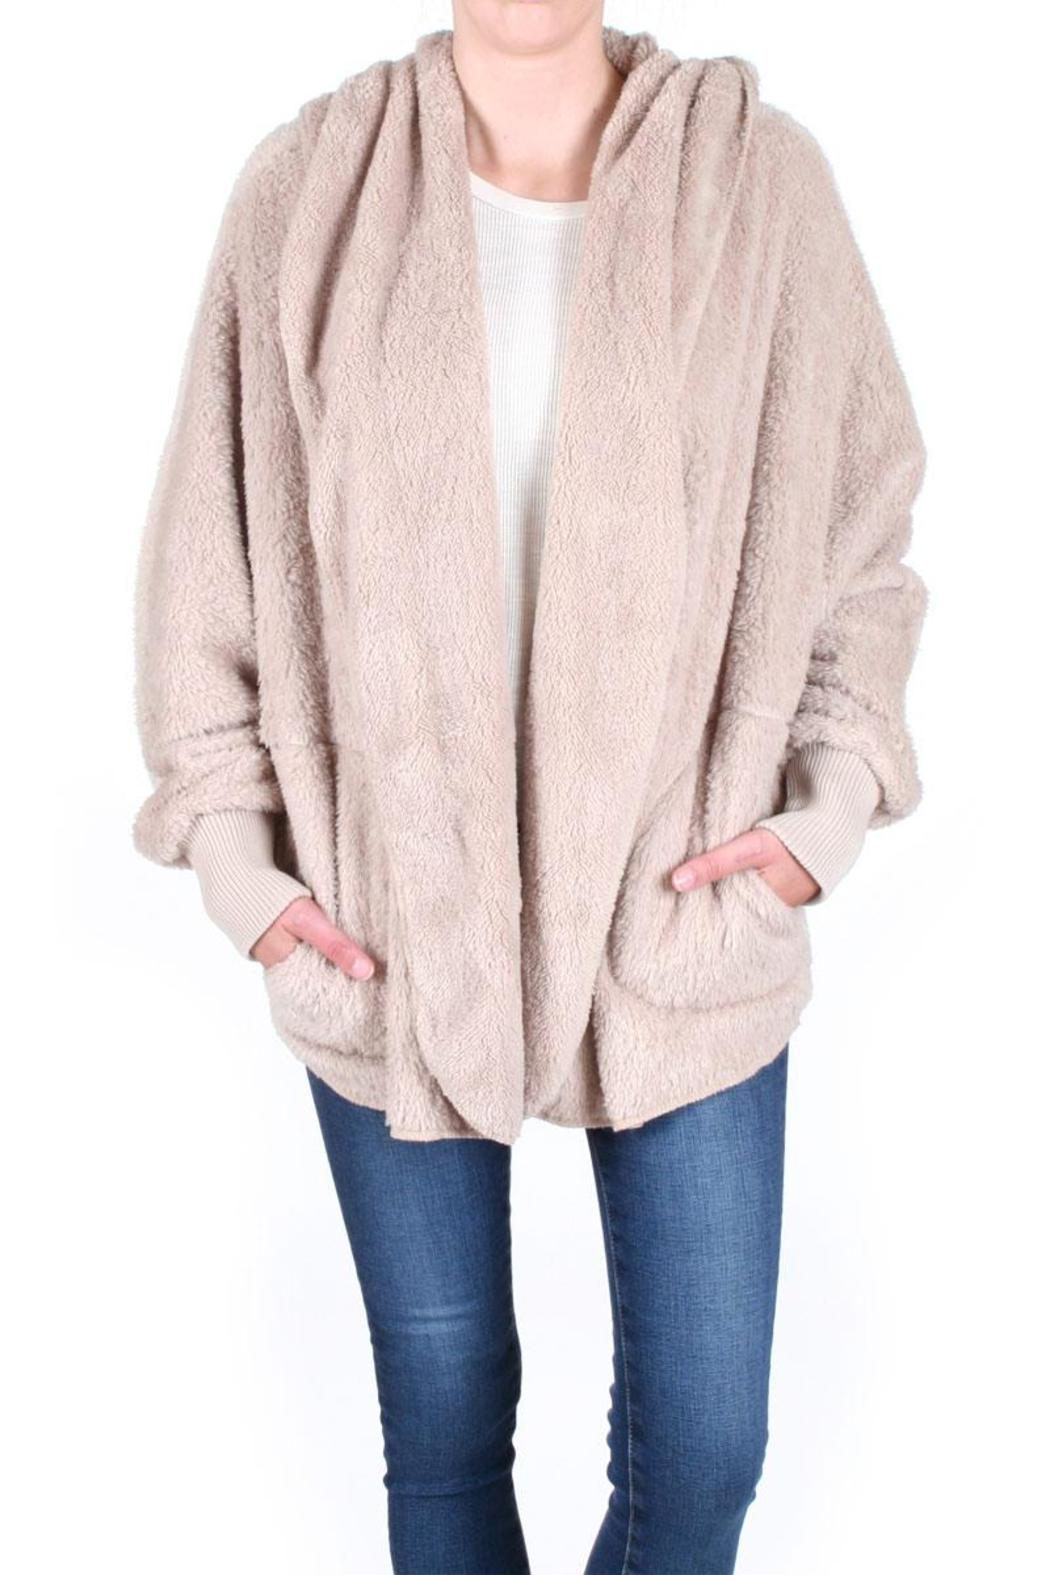 Shop our Once Upon A Hood Fluffy Coat at getessay2016.tk Share style pics with FP Me, and read & post reviews. Free shipping worldwide - see site for details.